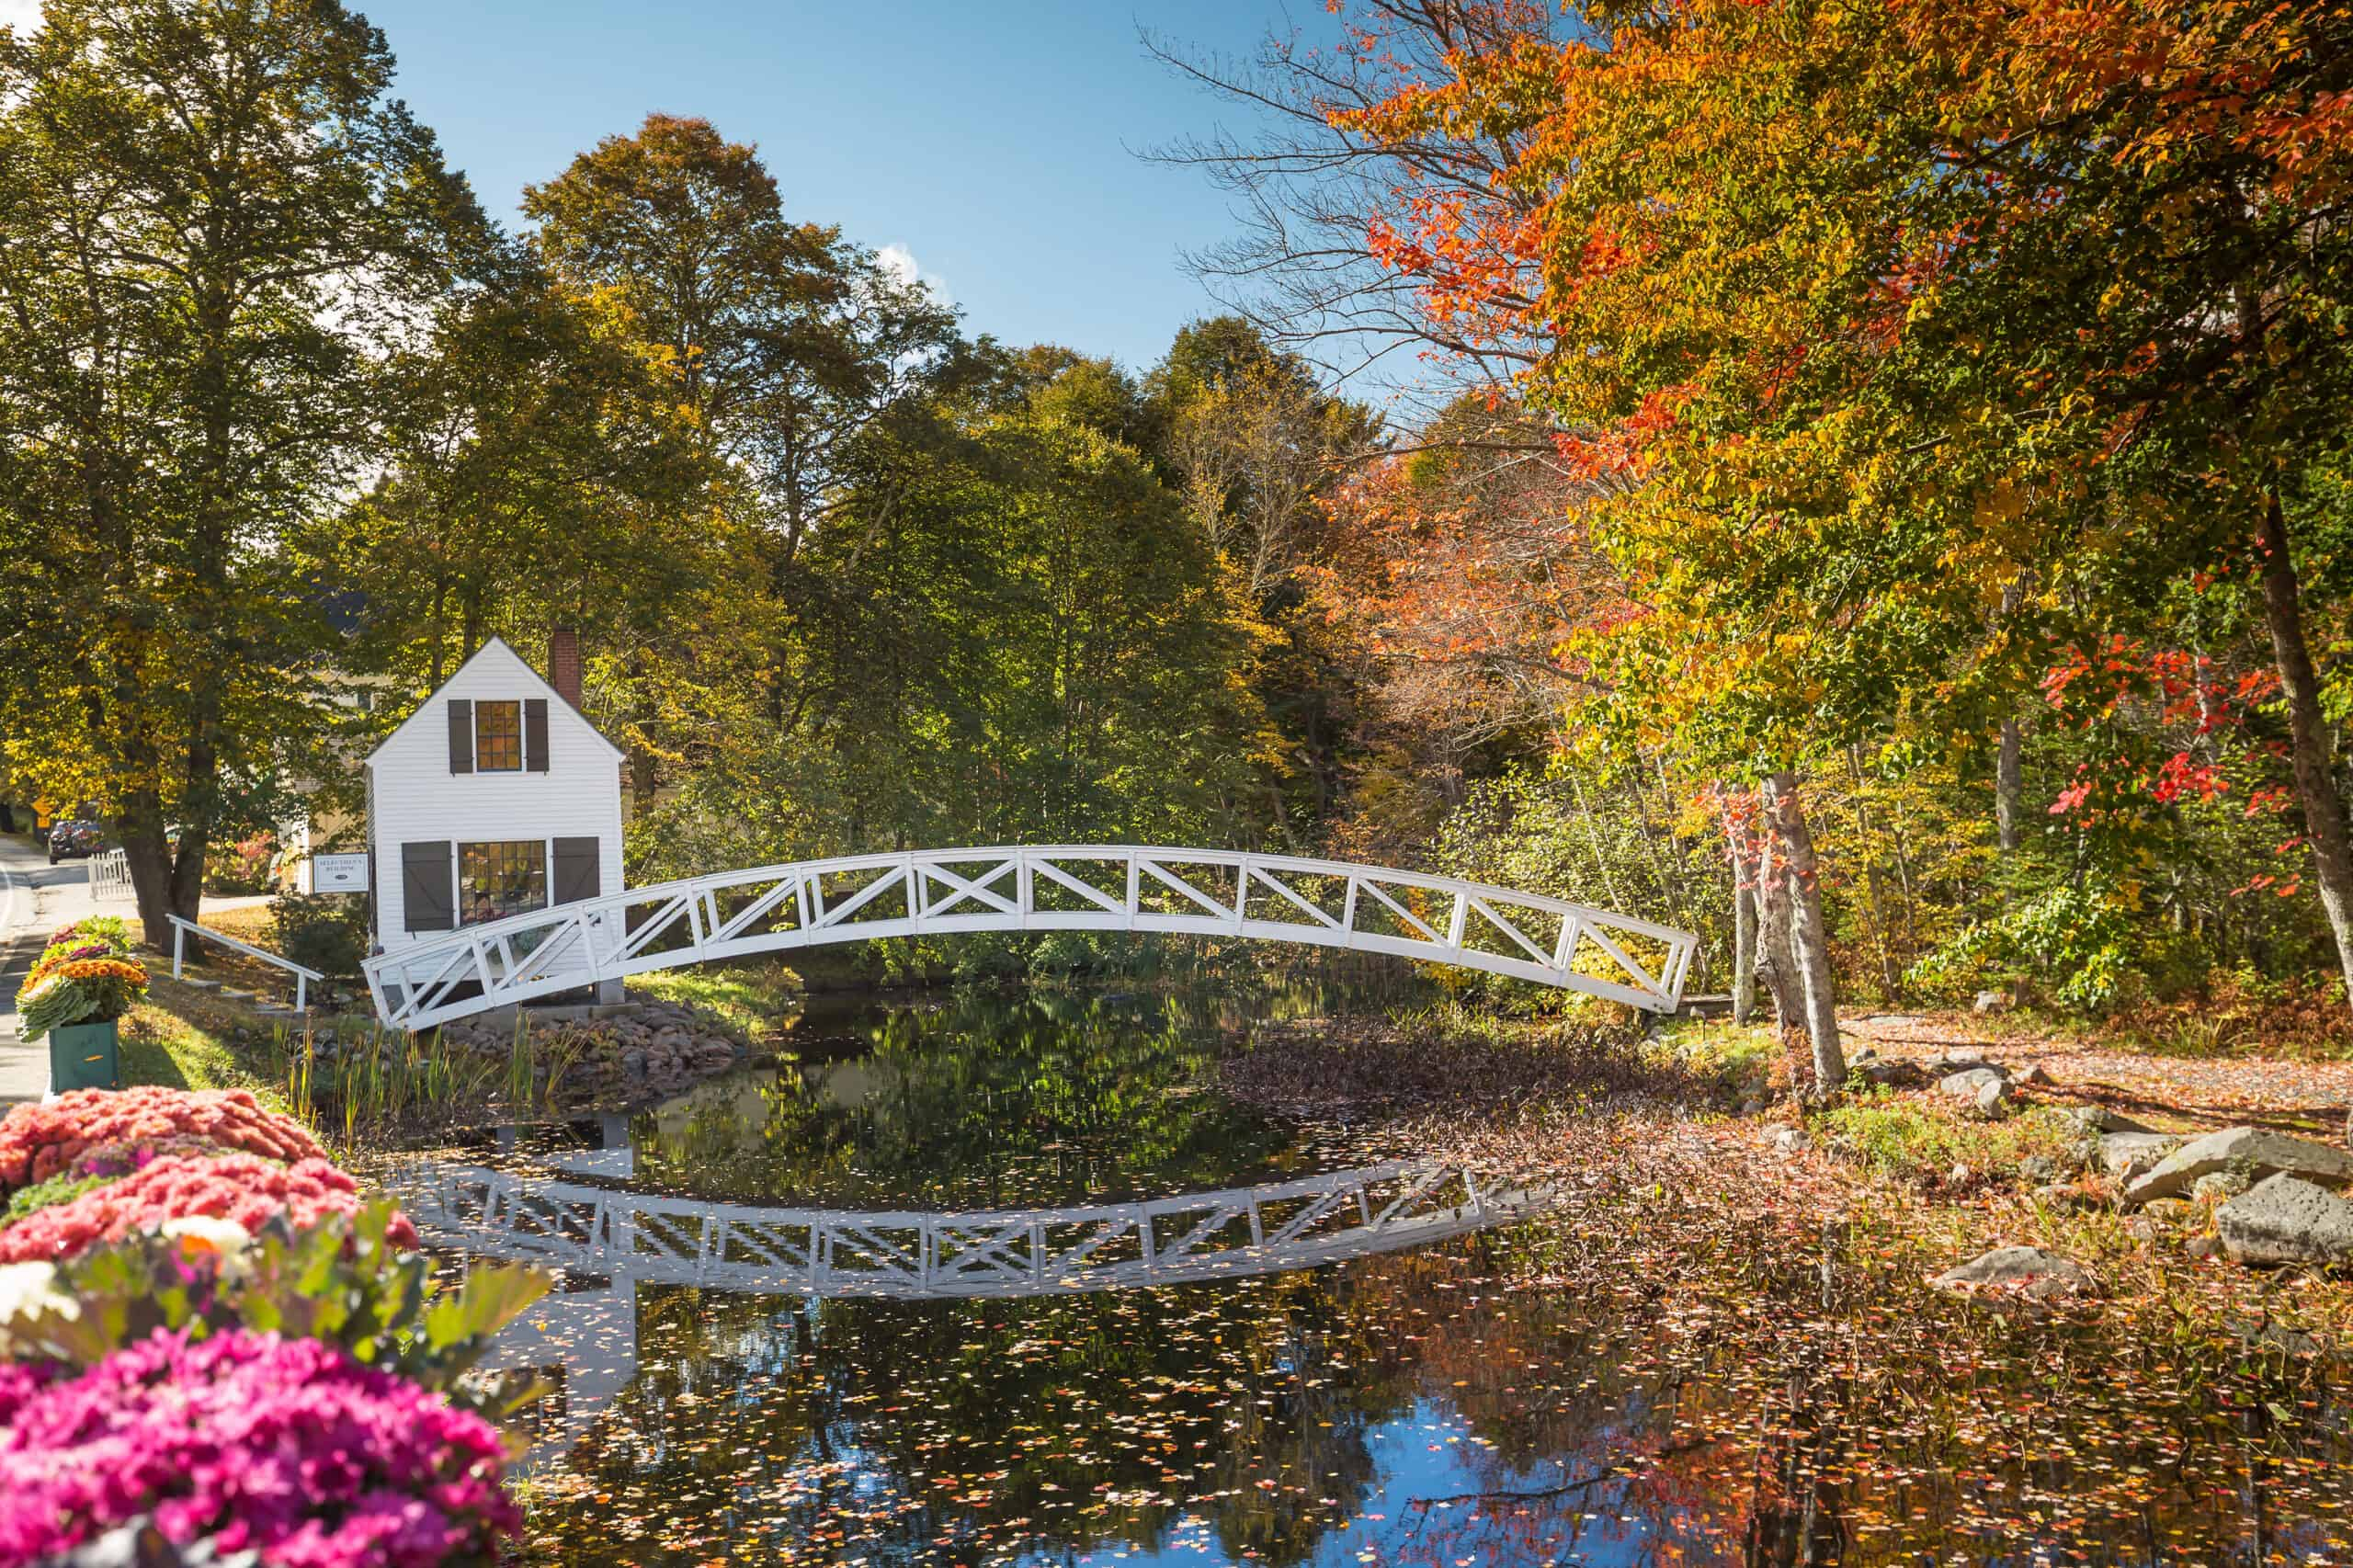 best airbnbs in acadia and bar harbor maine - image of delicate white bridge spanning pond surrounded by fall trees